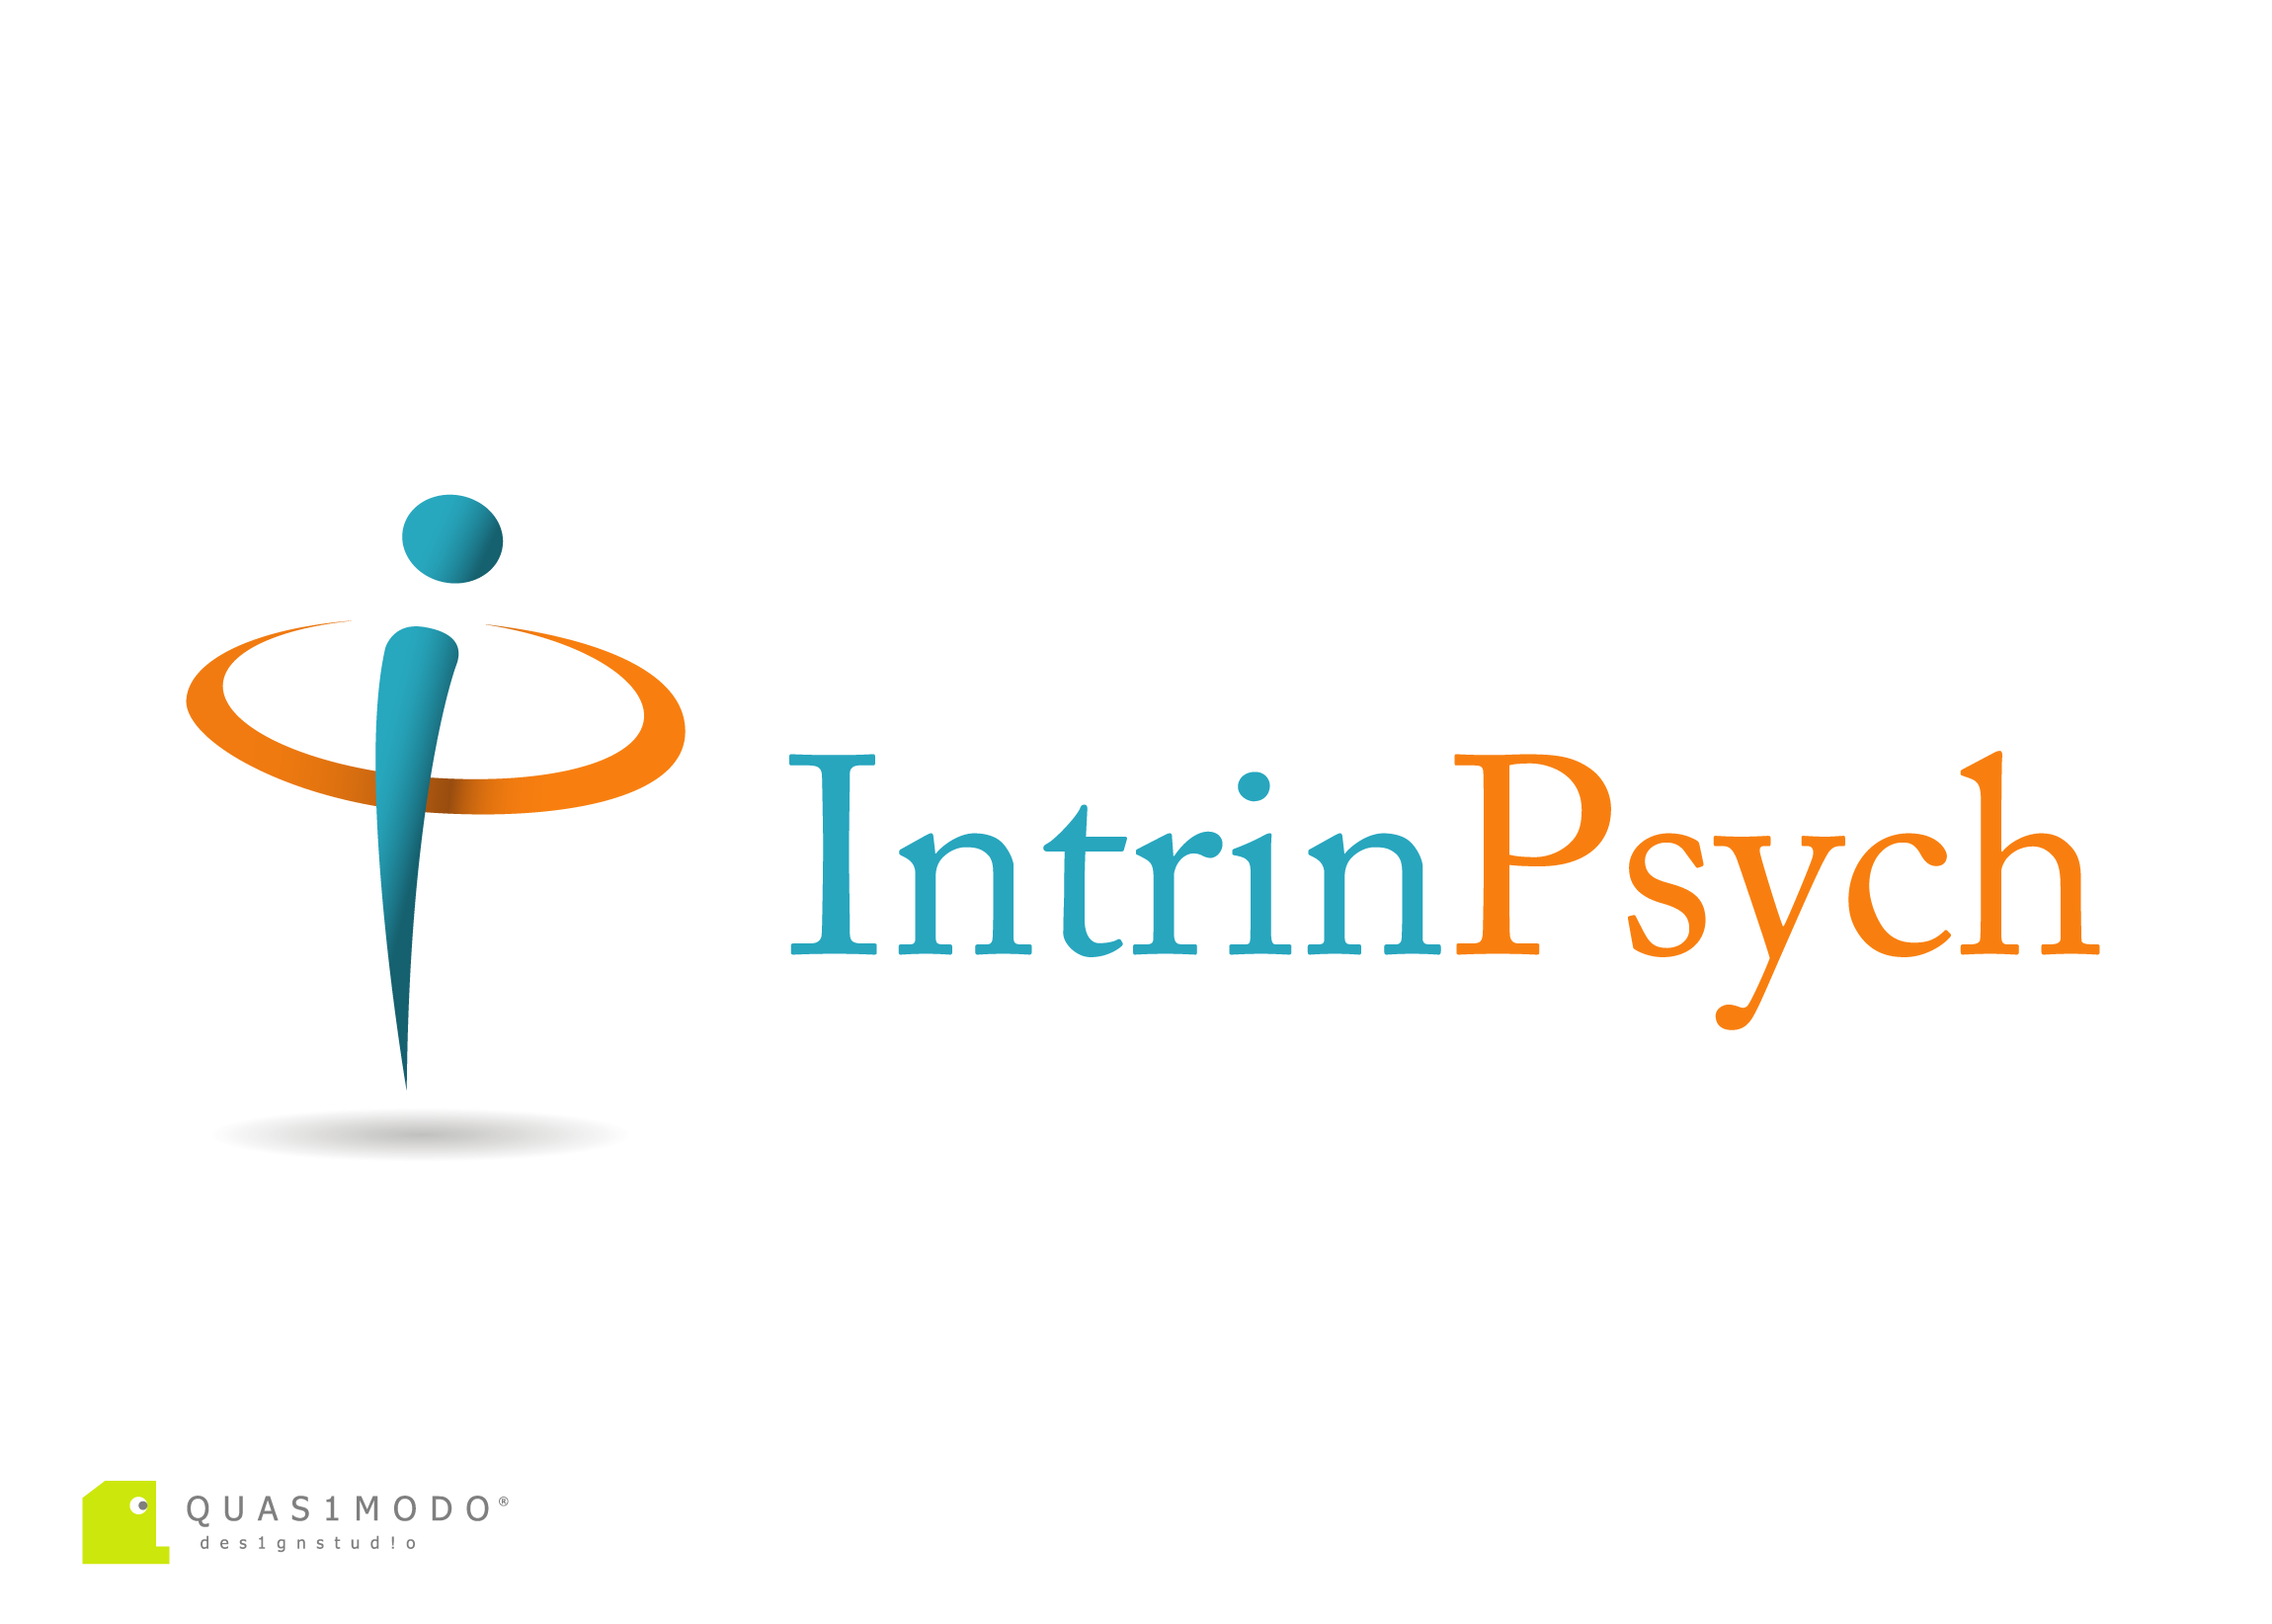 Logo Design by DIMITRIOS PAPADOPOULOS - Entry No. 169 in the Logo Design Contest New Logo Design for IntrinPsych.